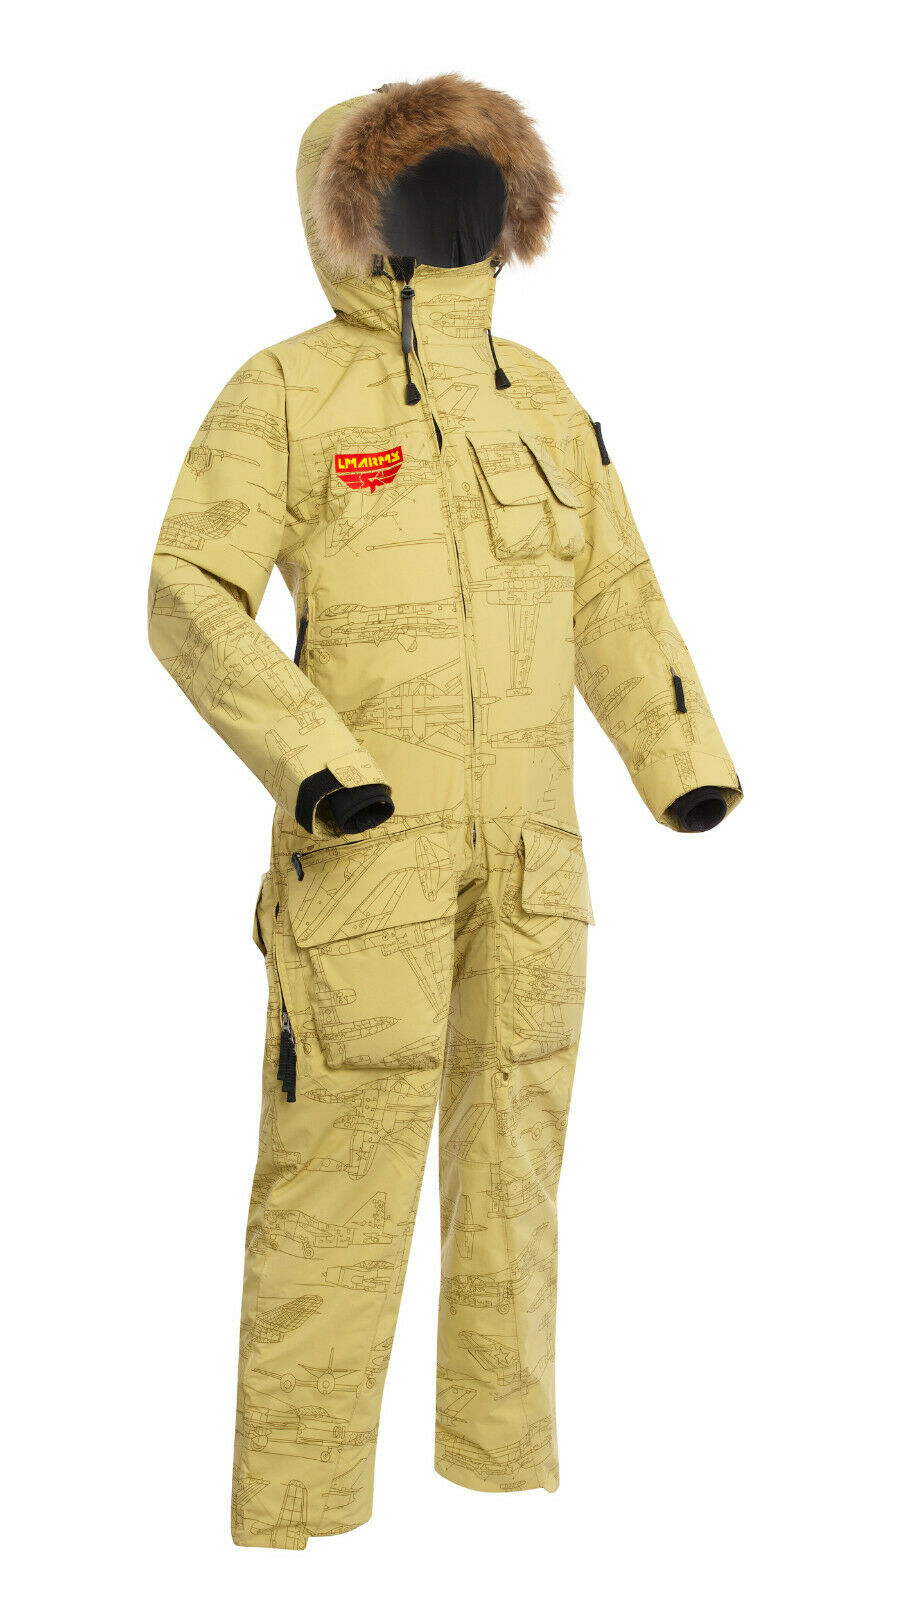 One-Piece Suit LMA  Griffin SHL Warm Insulated Snowmobile & Skiing Co ll  with 100% quality and %100 service